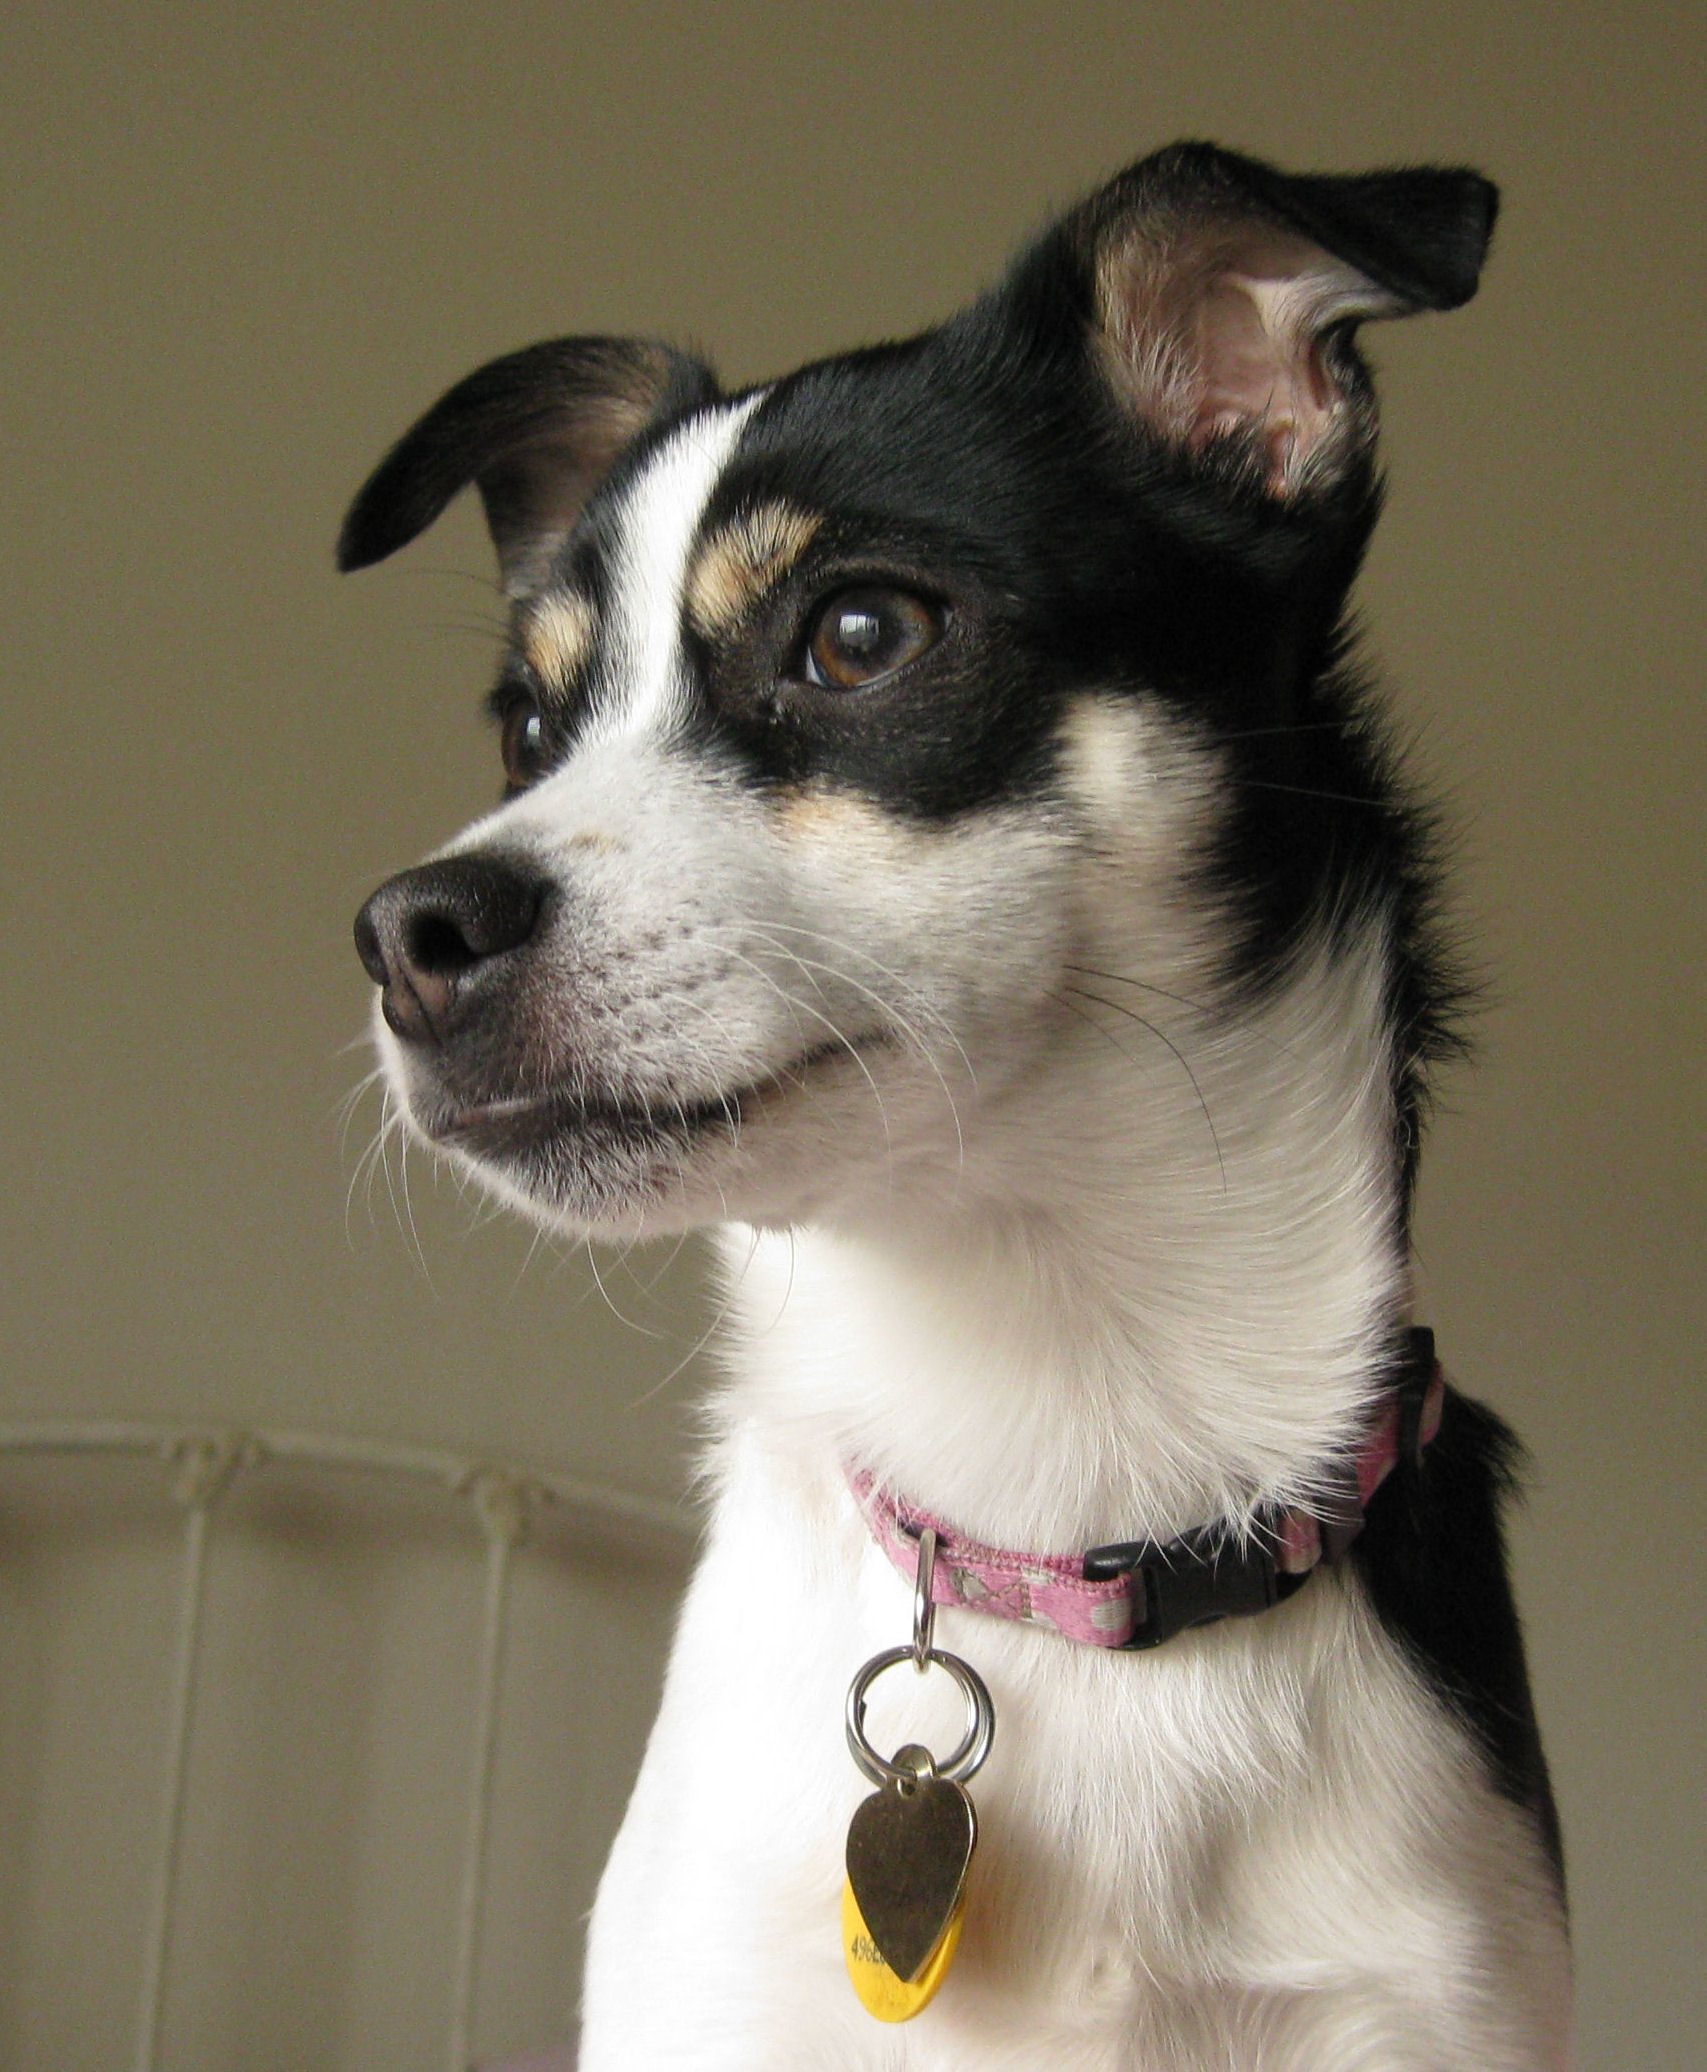 Rat Terrier dog face photo and wallpaper. Beautiful Rat Terrier dog